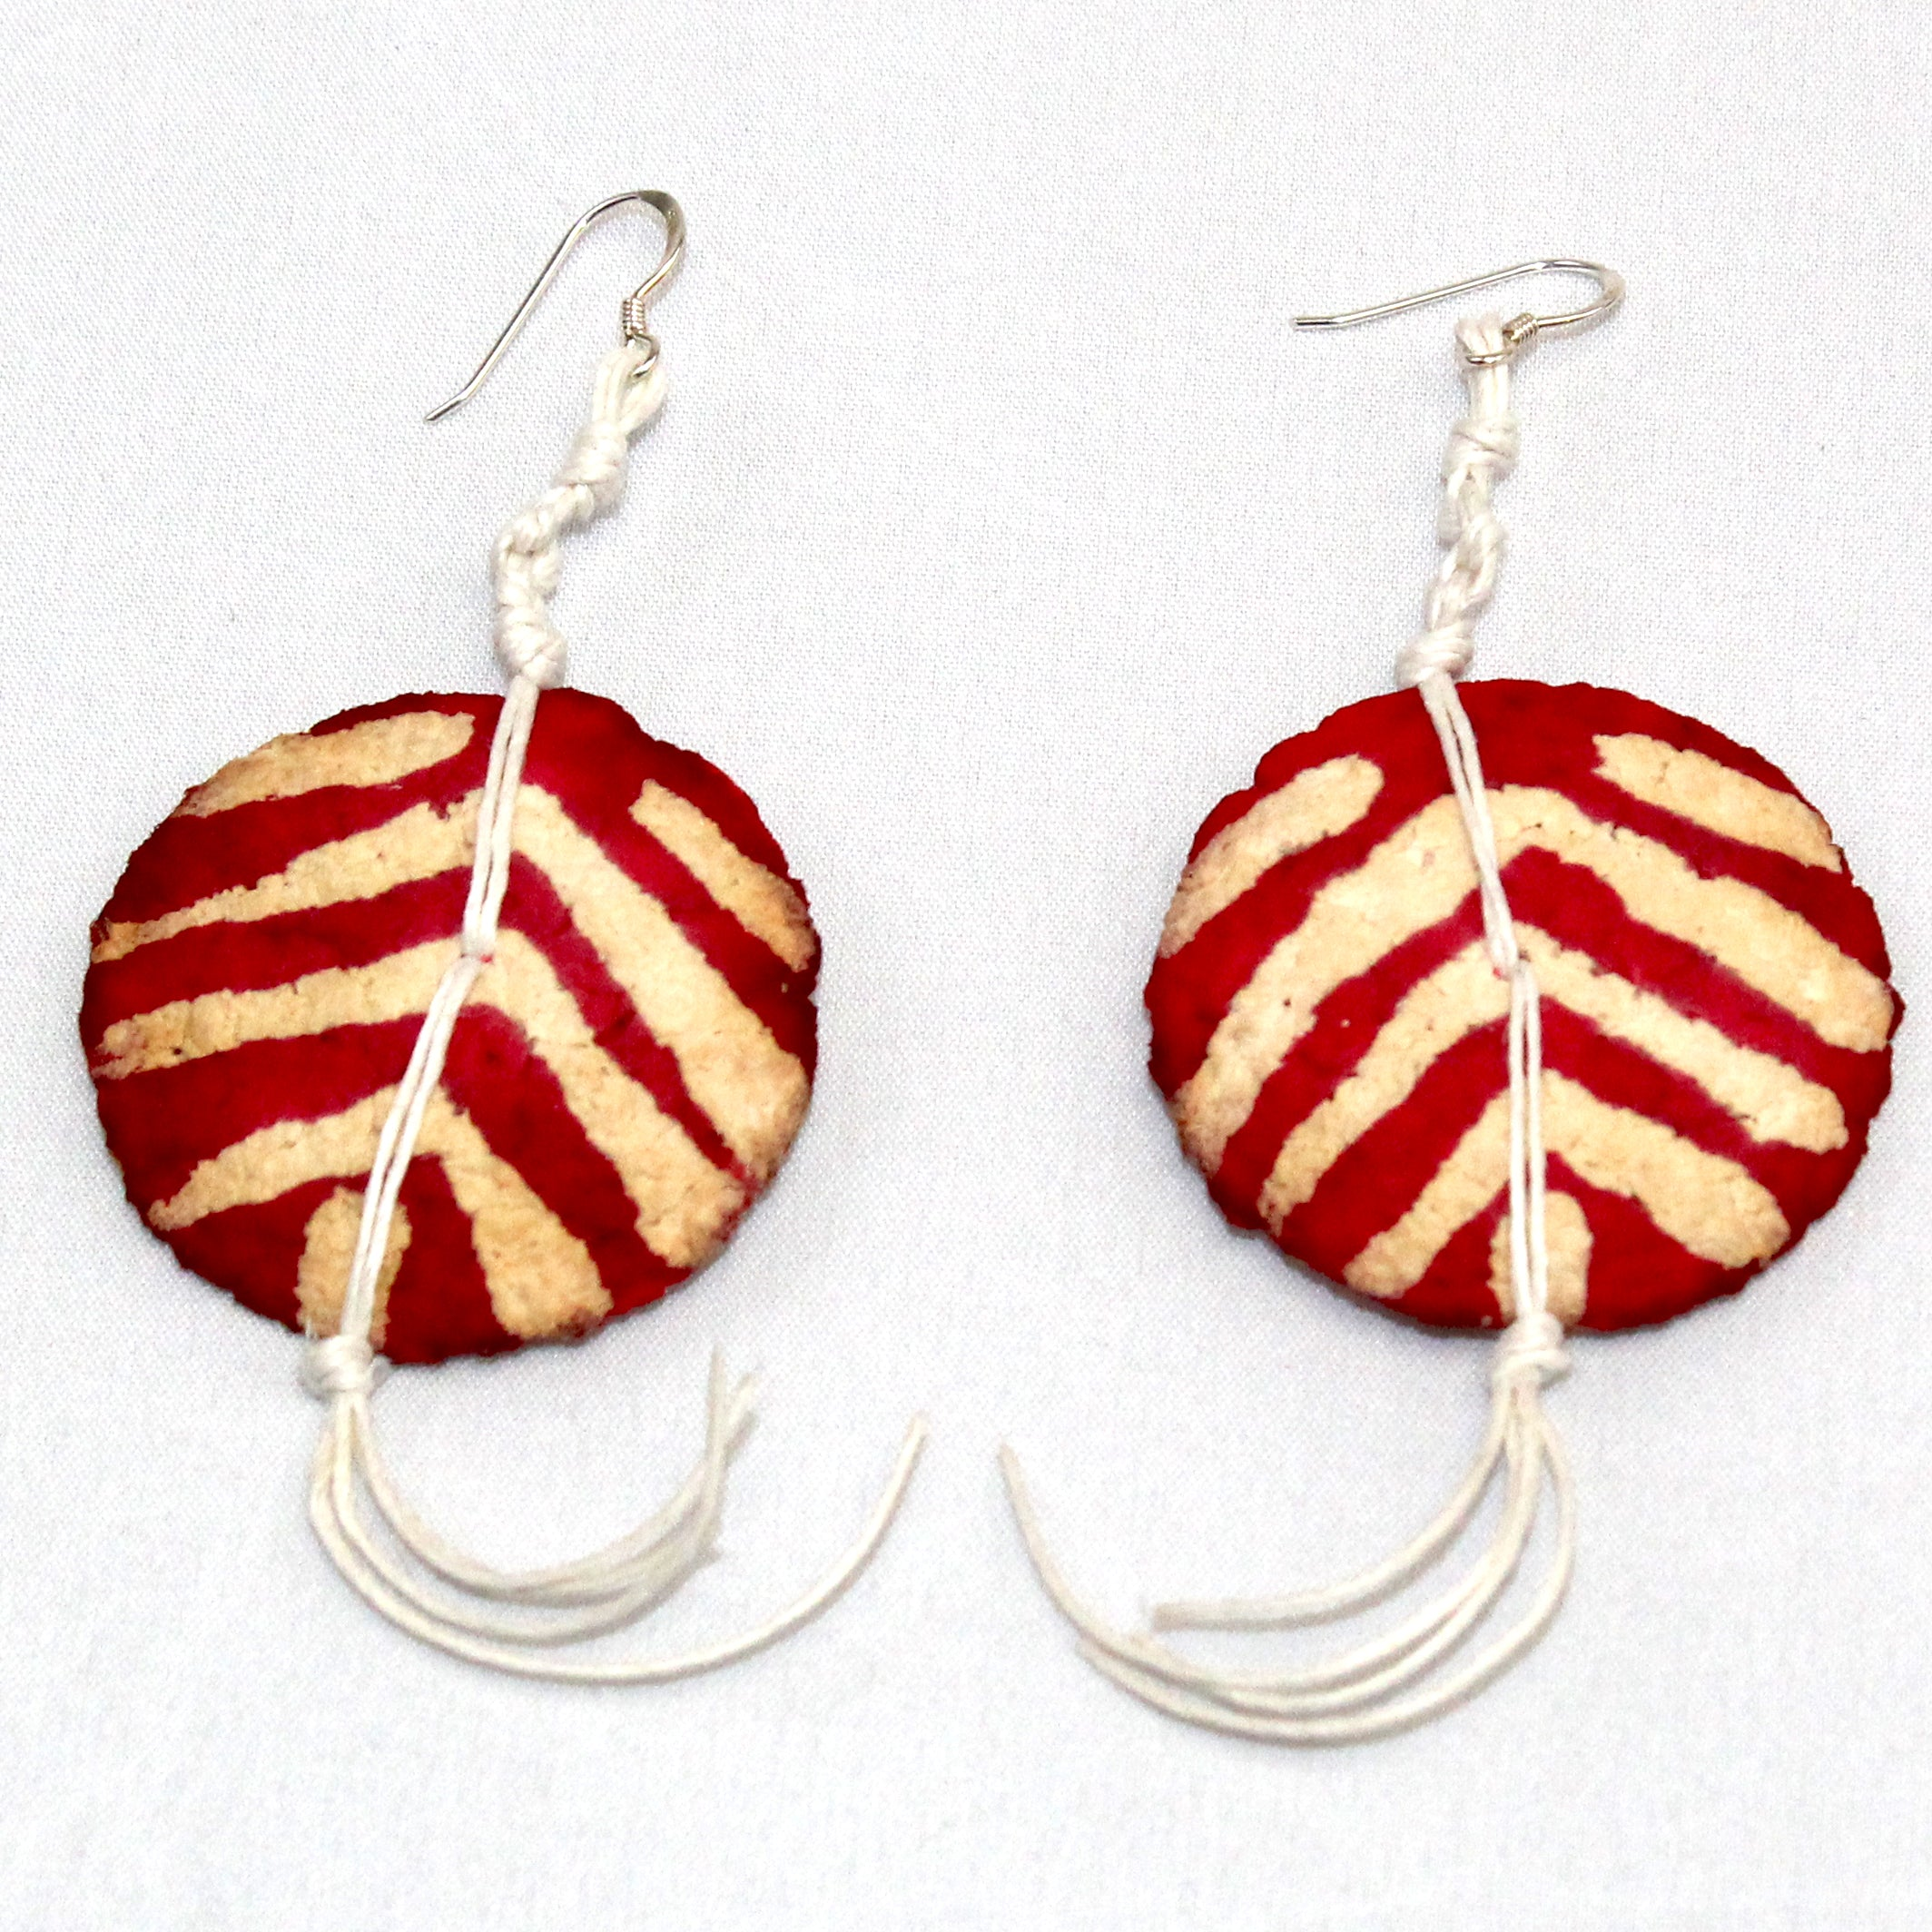 Begona Rentero Earrings, Navajo, Poppy Red